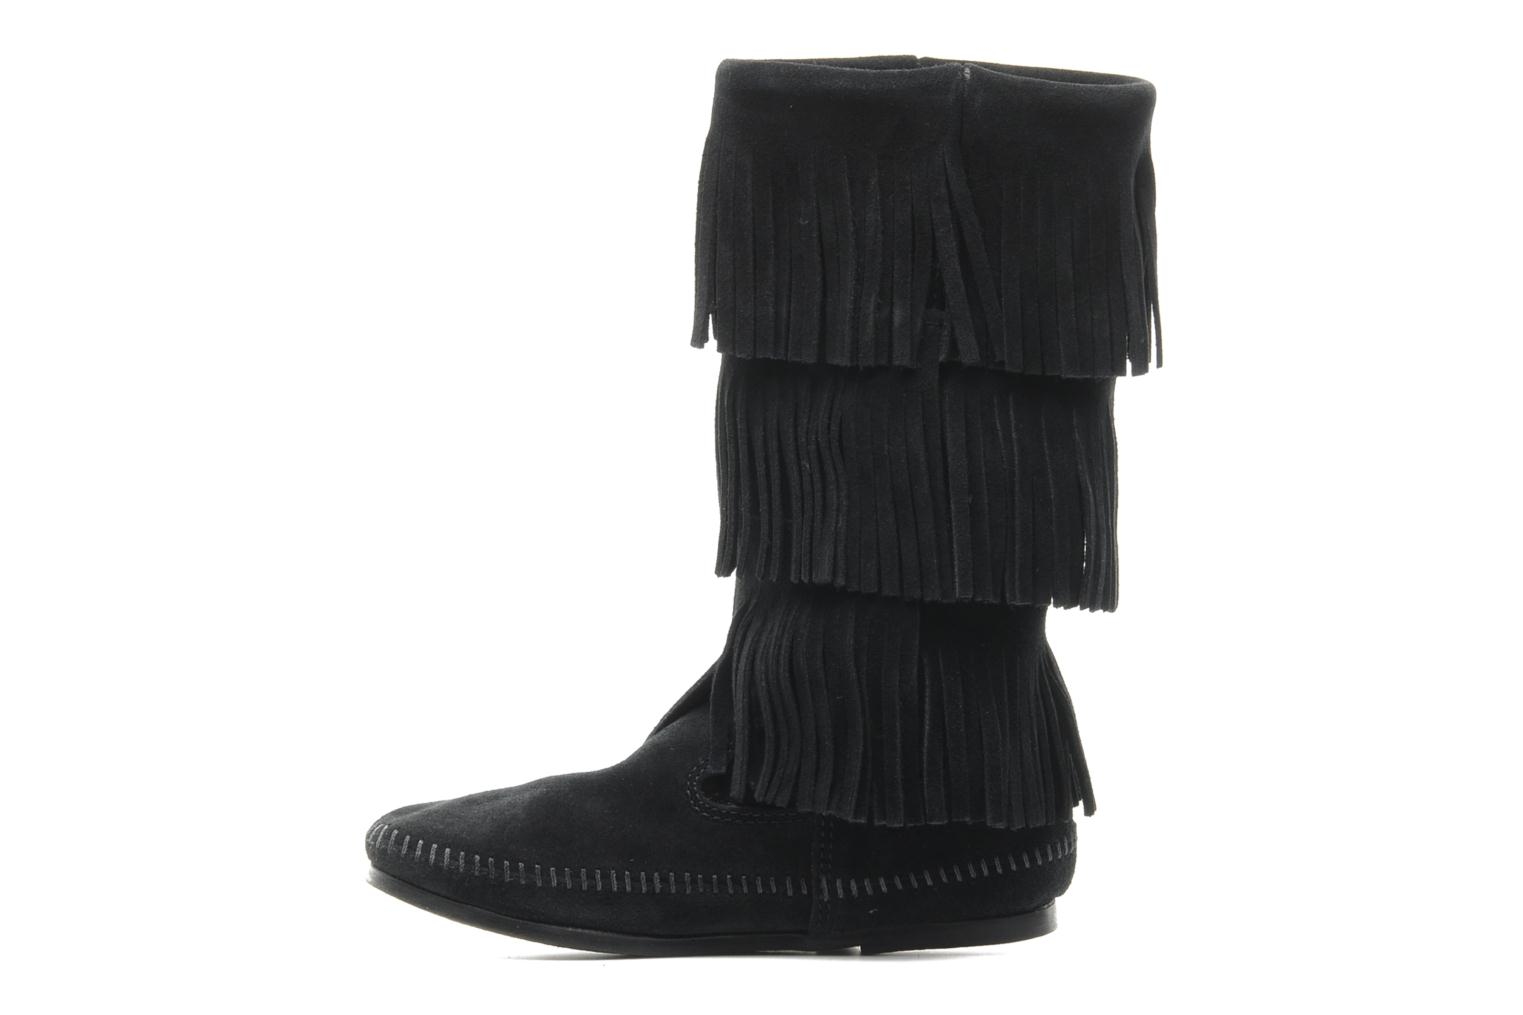 Botines  Minnetonka 3 LAYER FRINGE BOOT Negro vista de frente